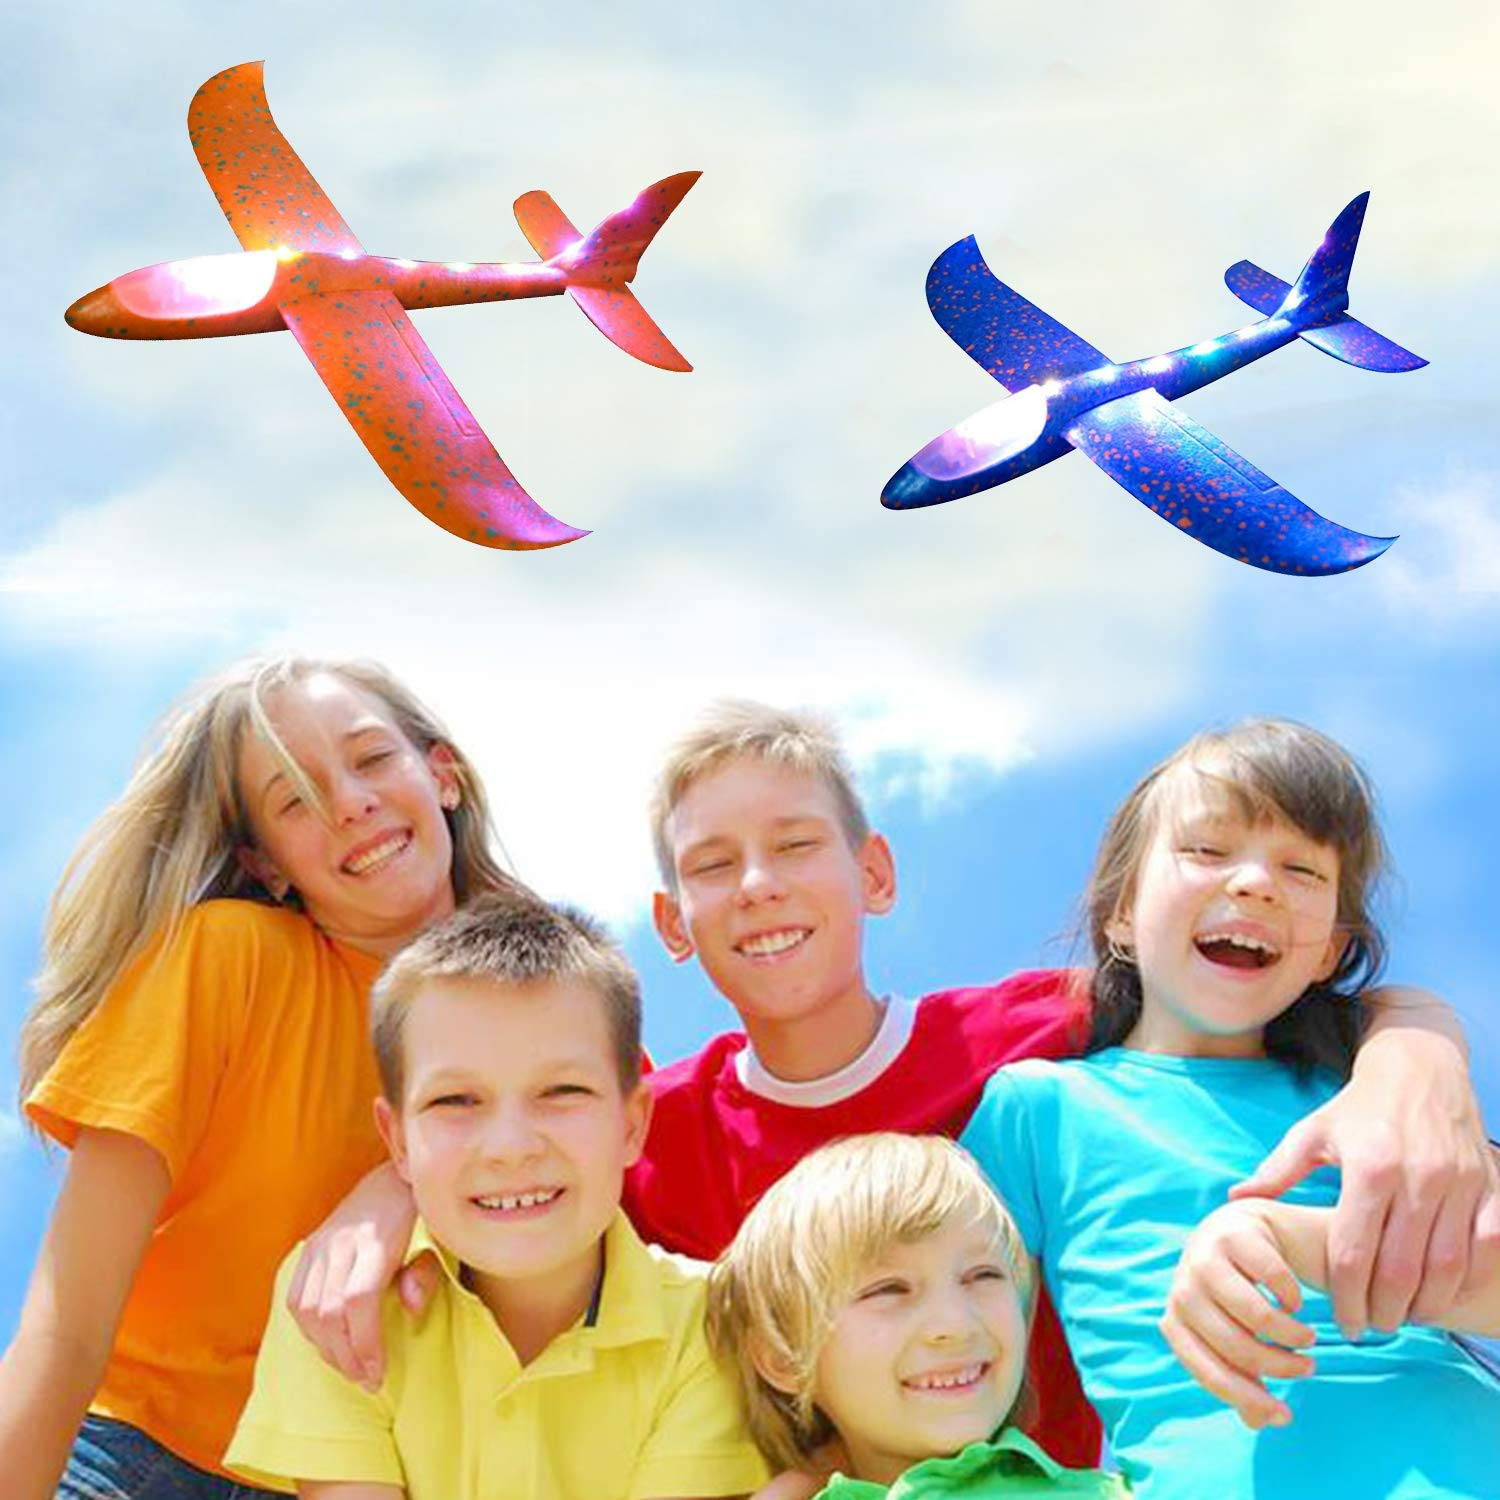 Airplane Toy for Kids, 3 Pack 13.5'' LED Light Up Throwing Foam Airplane Flying Aircraft Plane DIY Glider Aeroplane Model Jet Kit Flying Toys for Boys Girls Teens, Outdoor Sport Game Toys Party Favors by GreaSmart (Image #6)